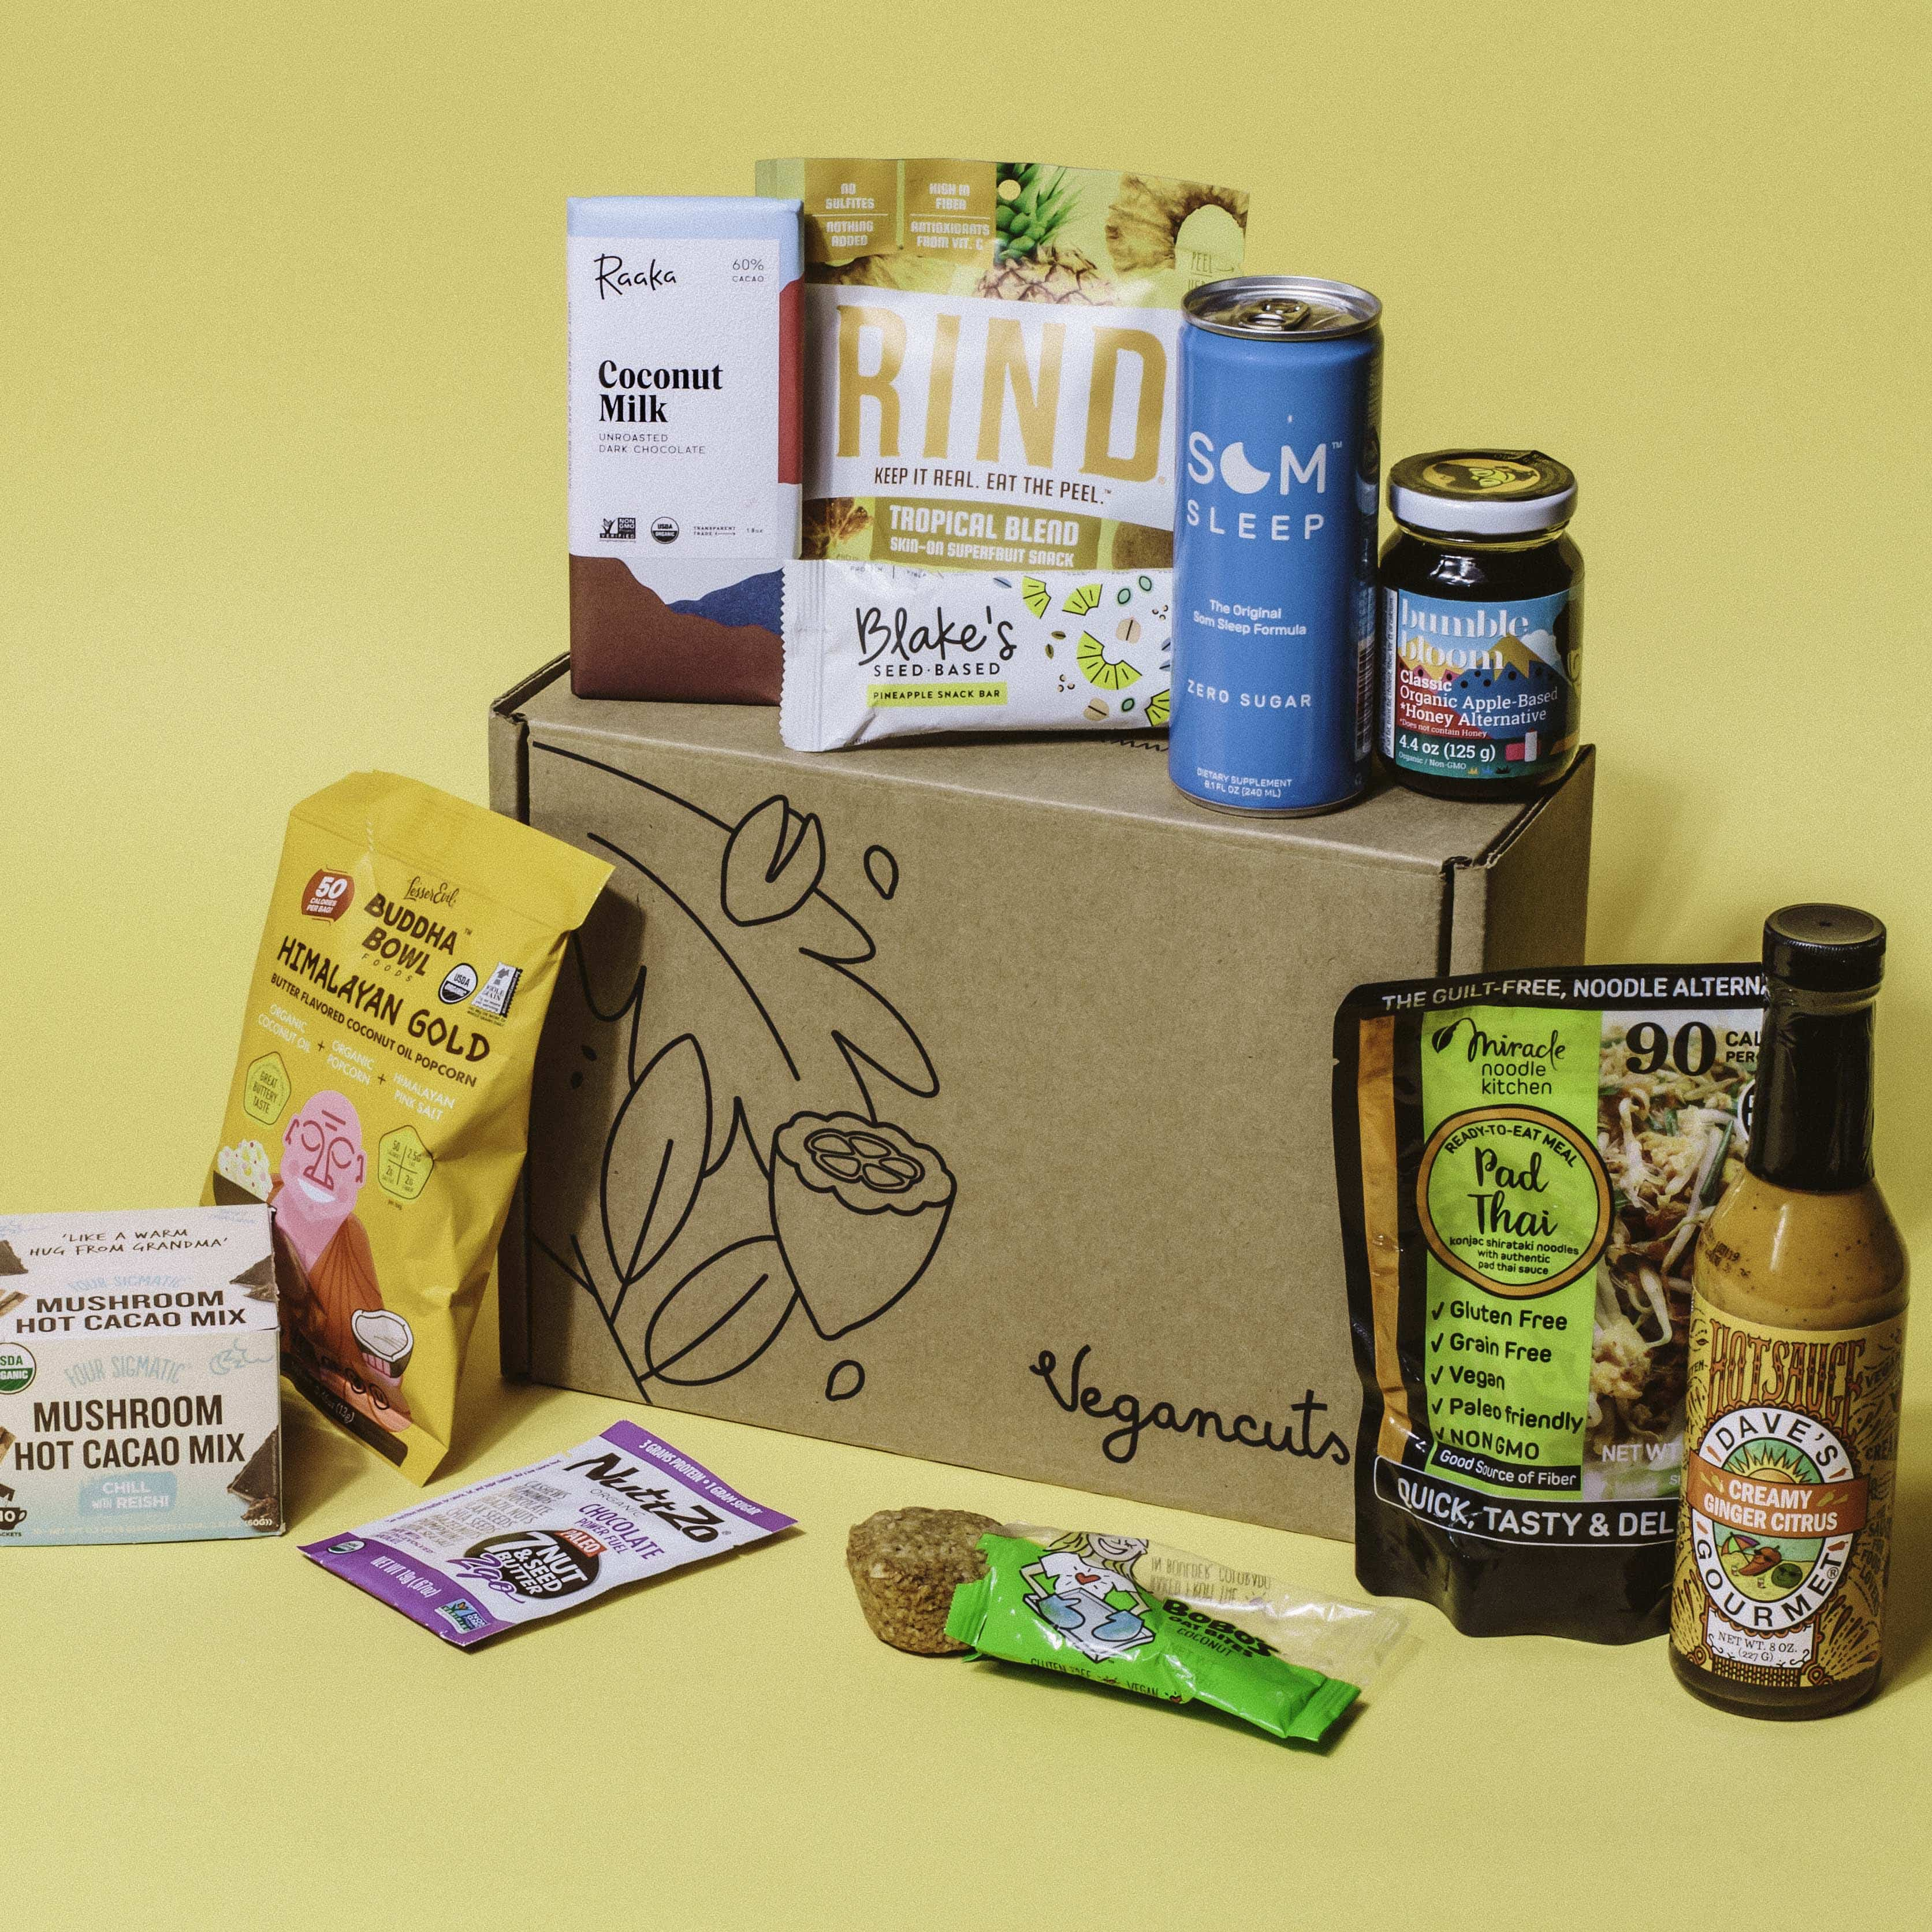 Vegancuts September 2019 Snack Box Full Spoilers!